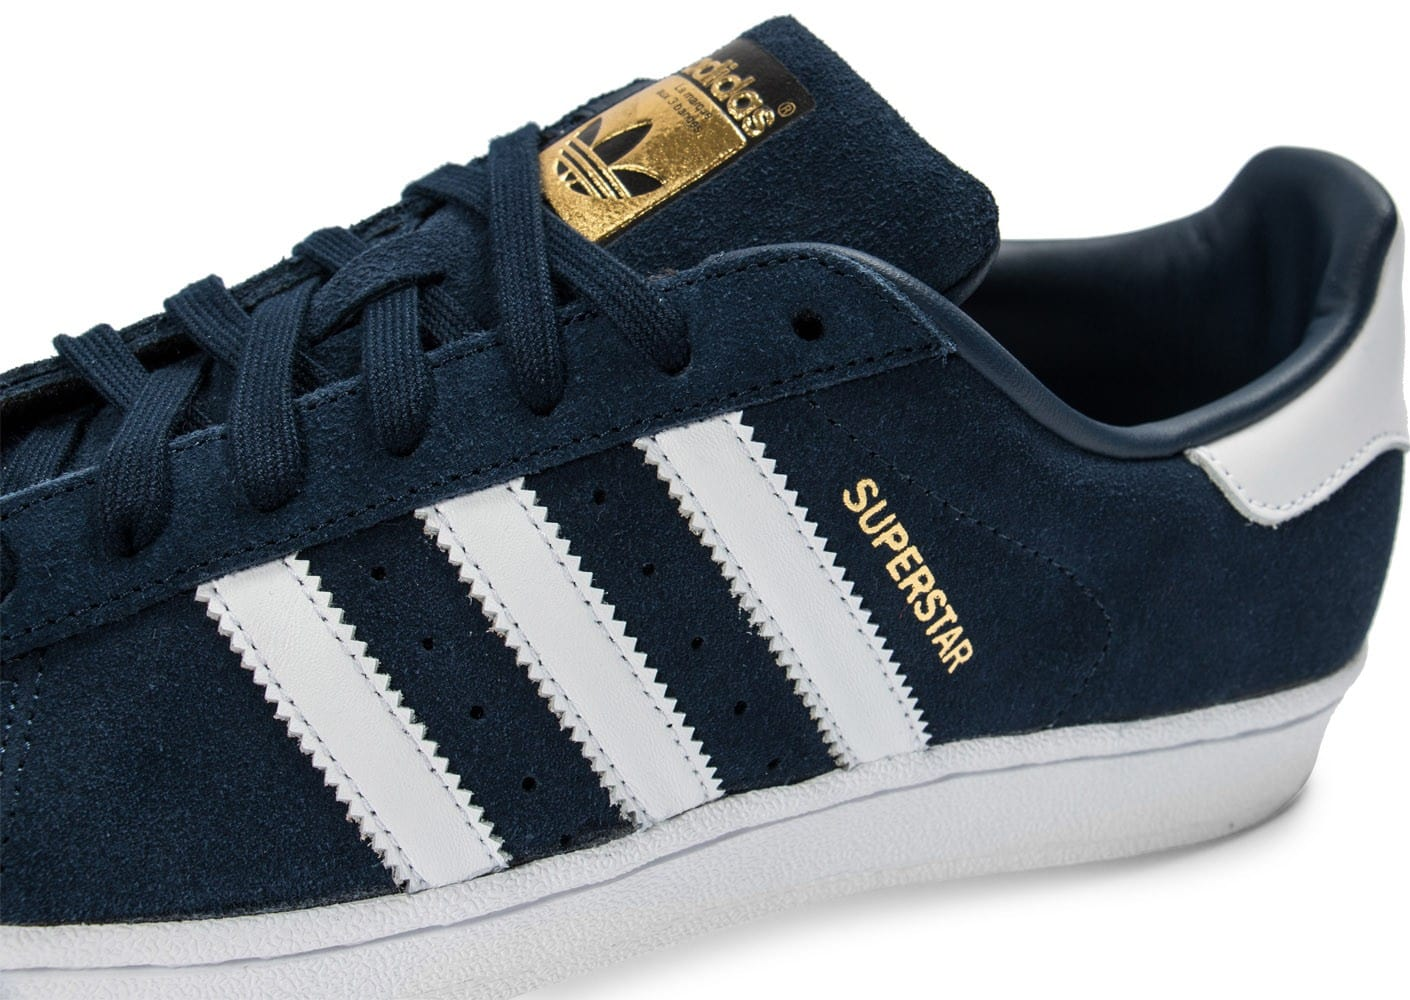 plus récent 9010a 1dc09 discount adidas superstar marine bleu 1542d 9e81c